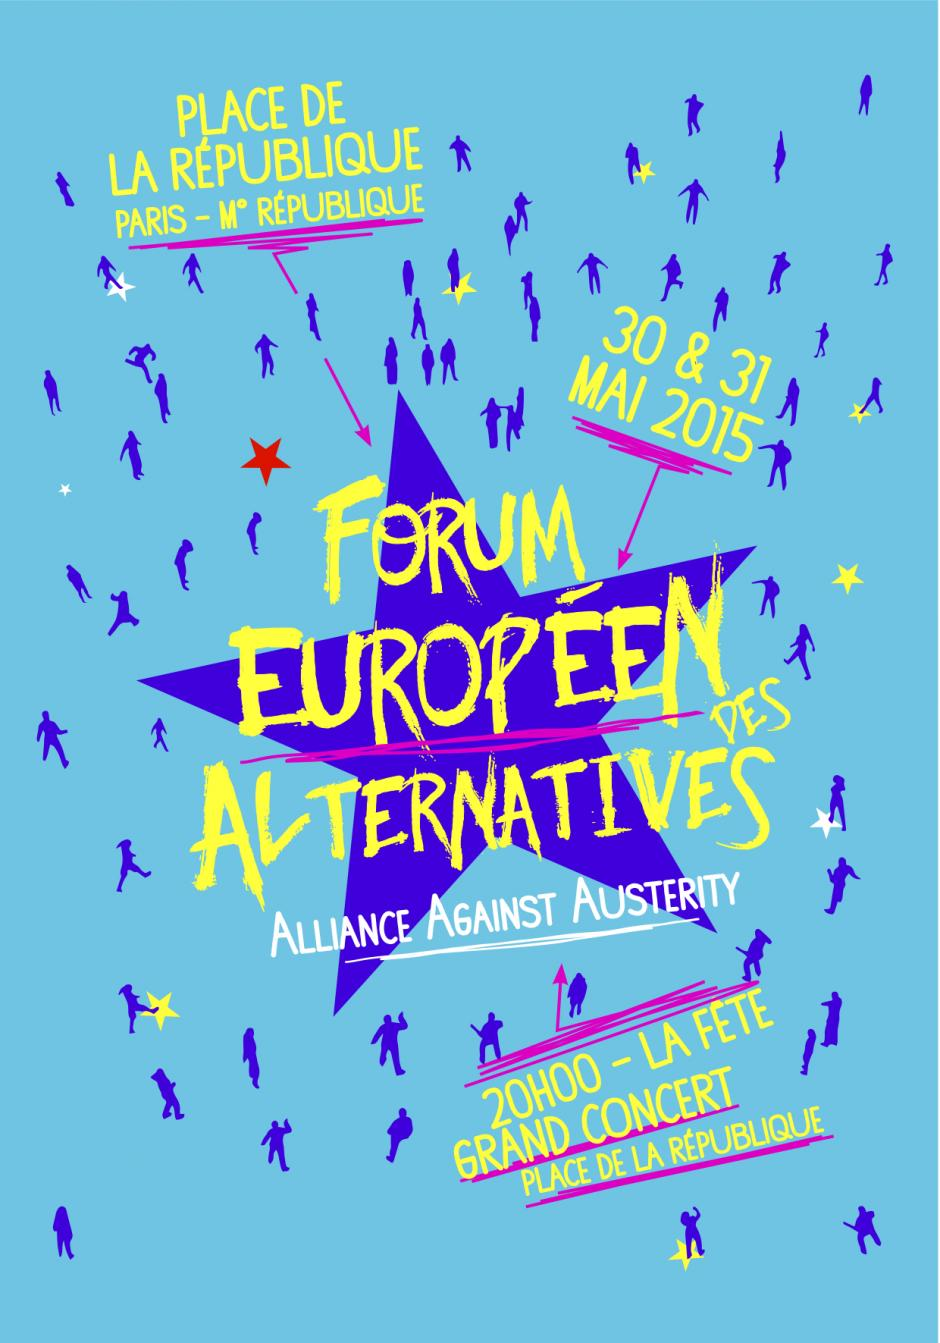 30 & 31 mai, Paris - Forum européen des alternatives-Alliance against austerity